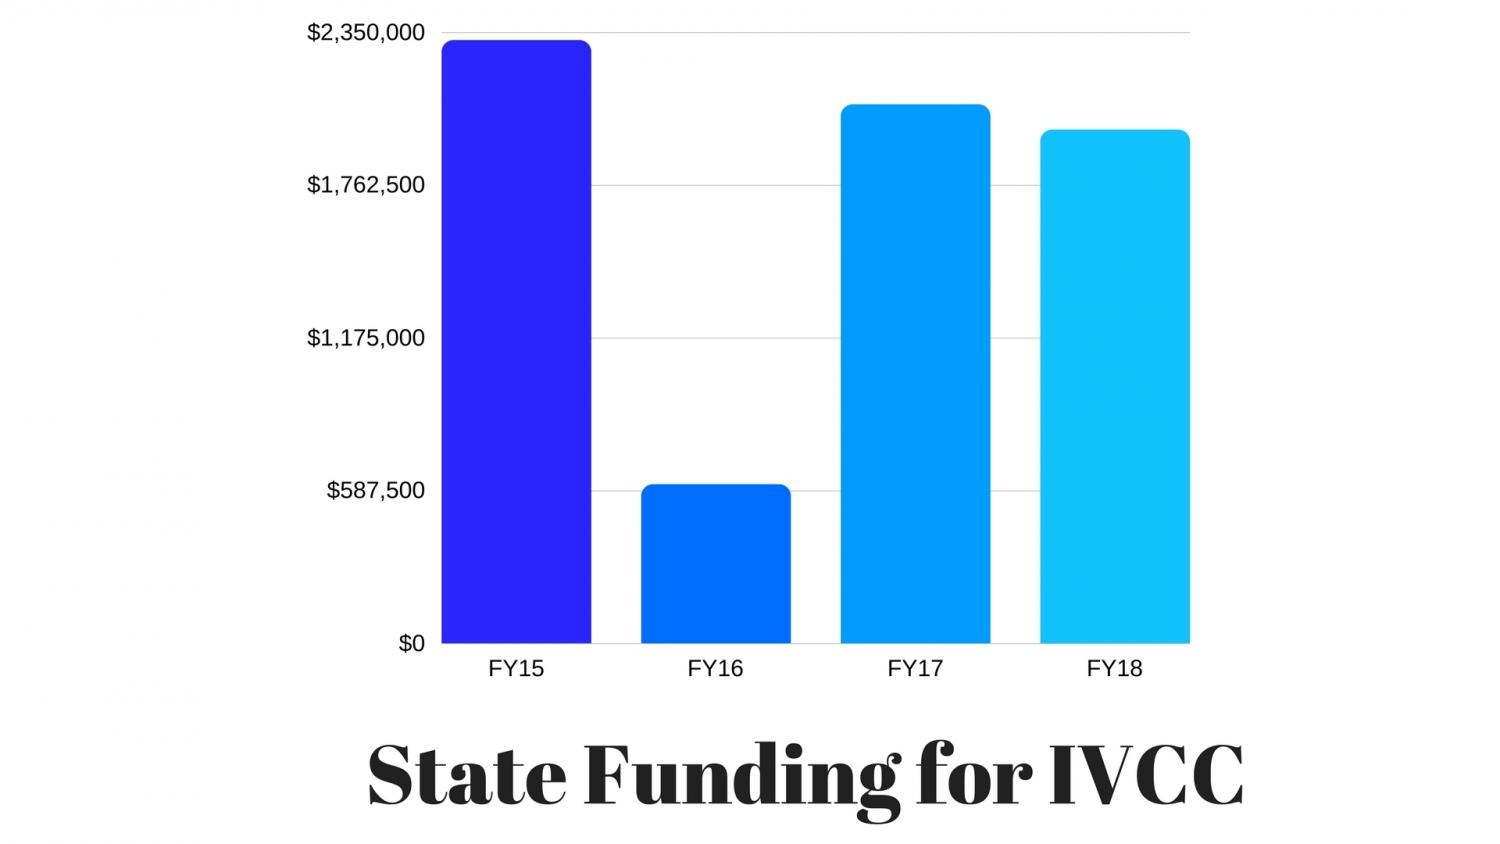 After a very lean year in 2016, state funding levels have been stabilized with the passing of a state budget in July.